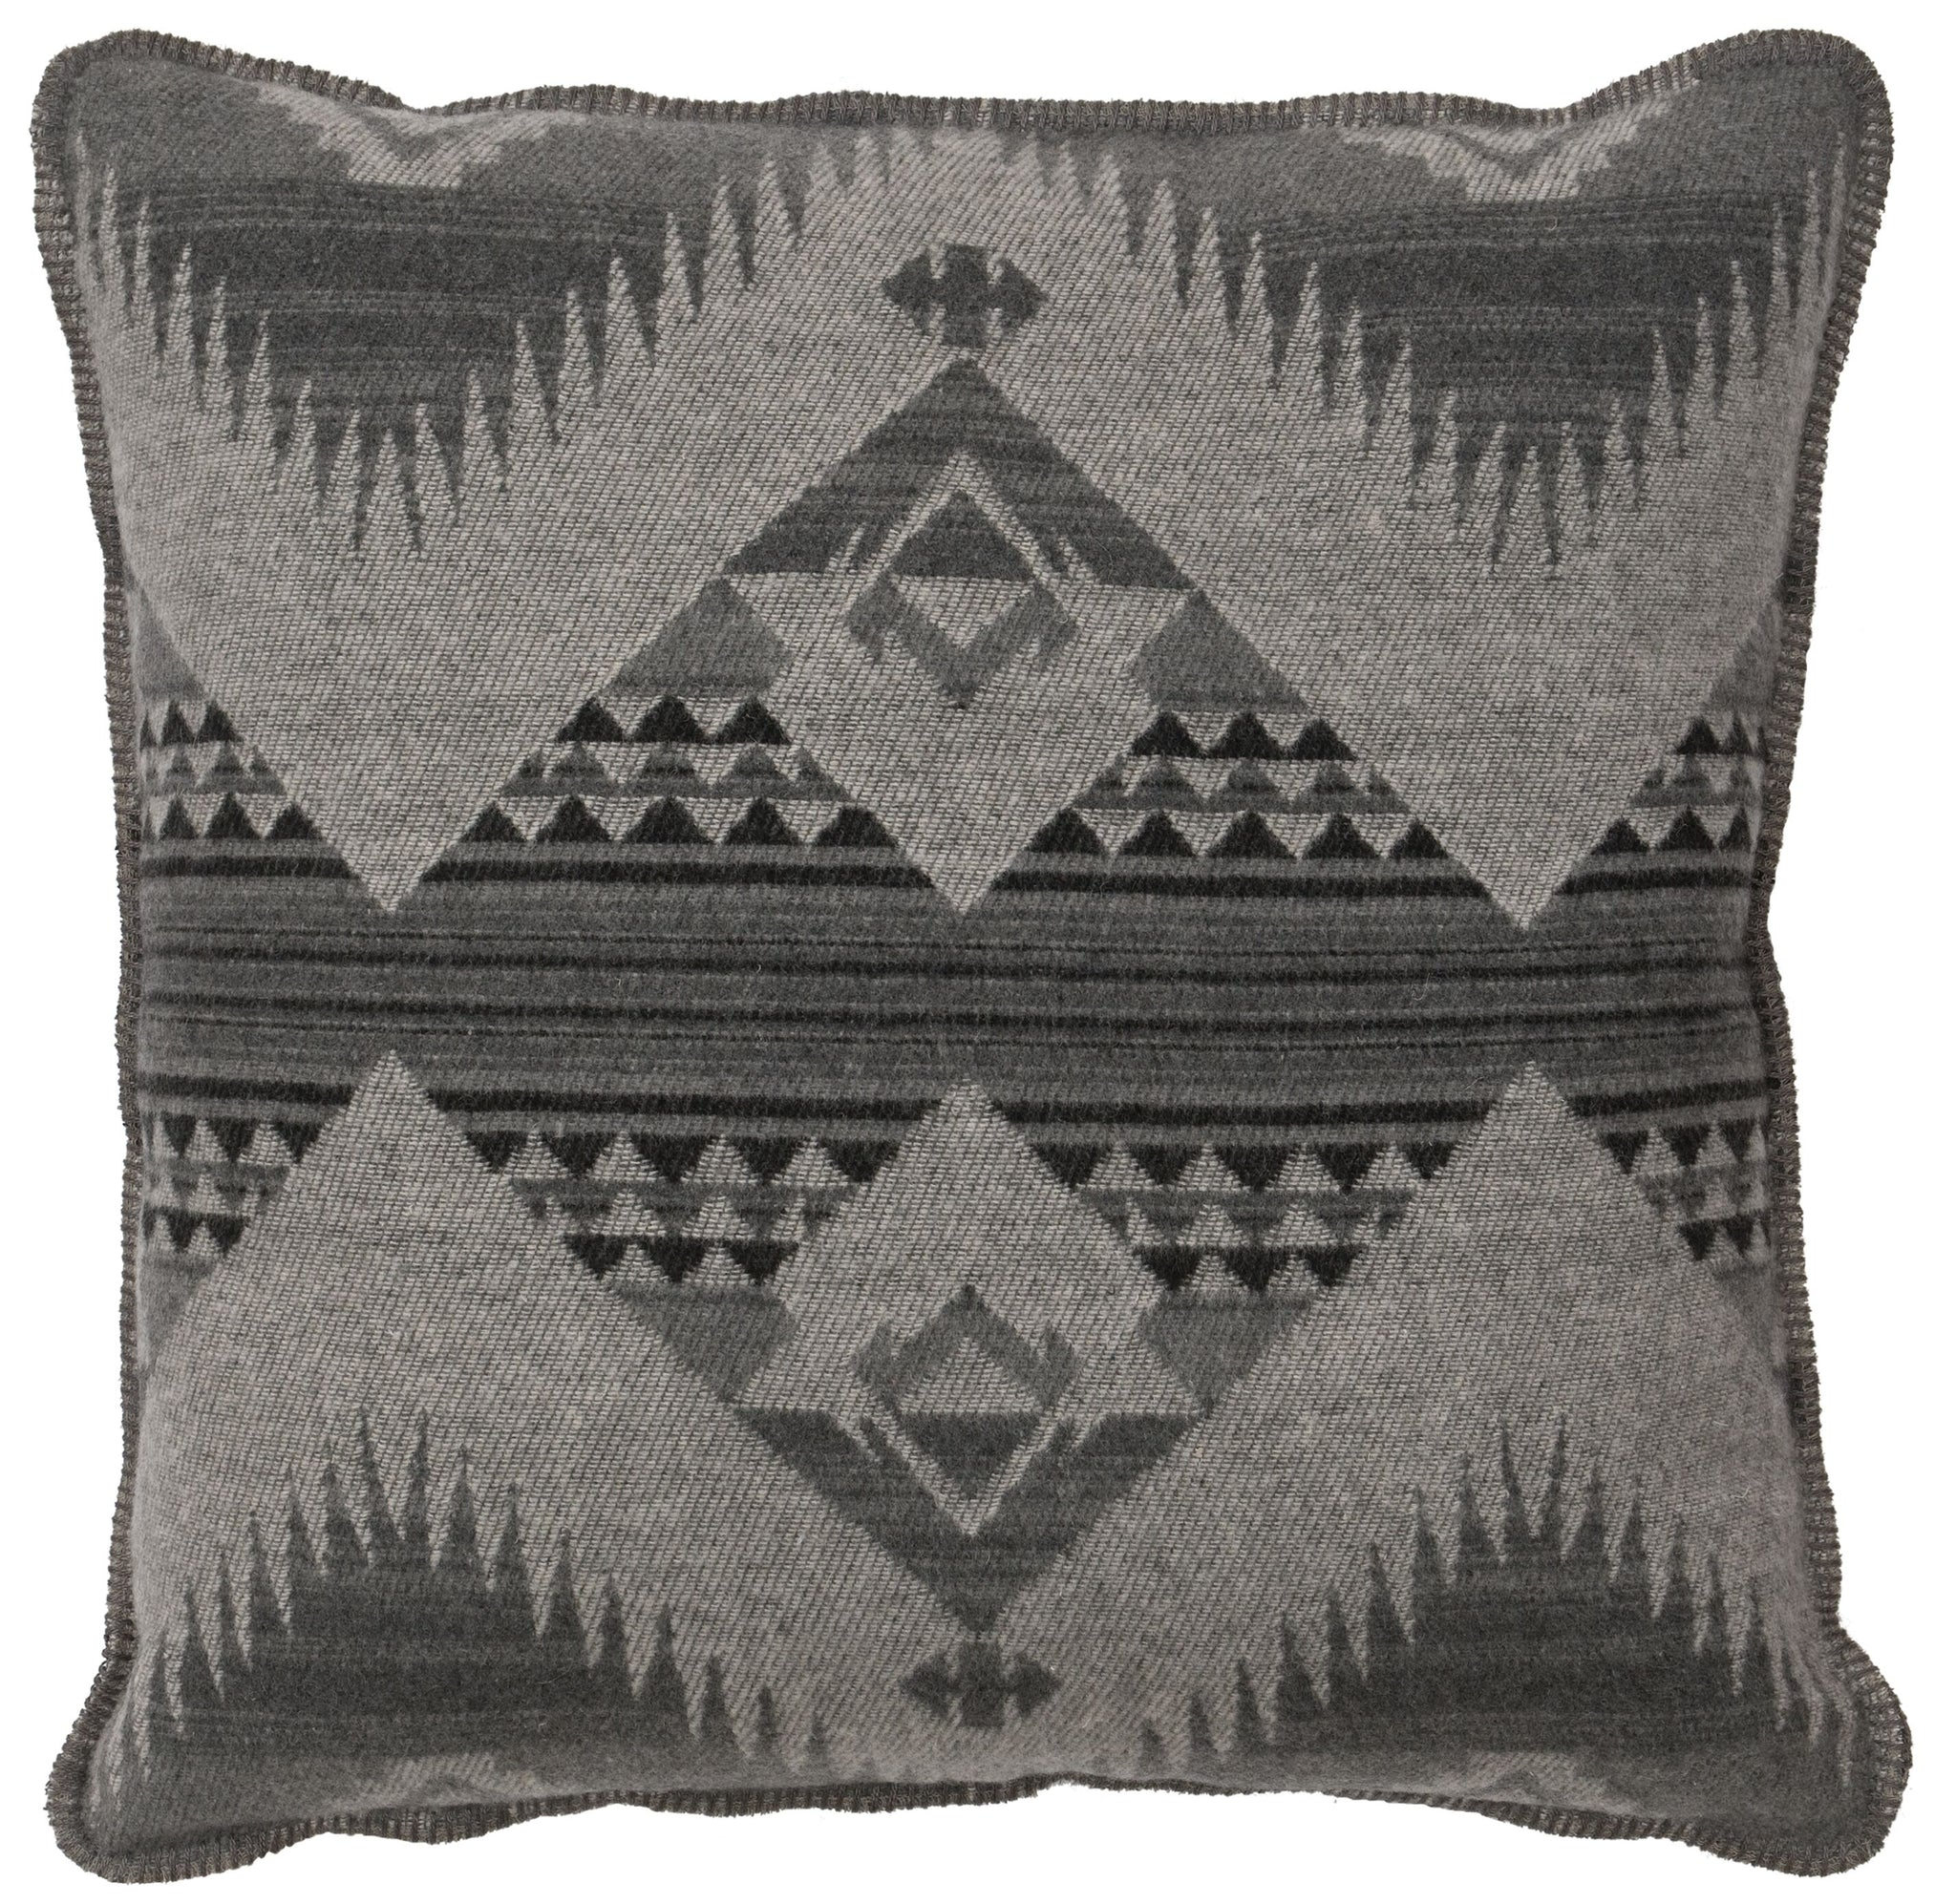 Geronimo Haze Alt Euro Sham Wooded River - unique linens online